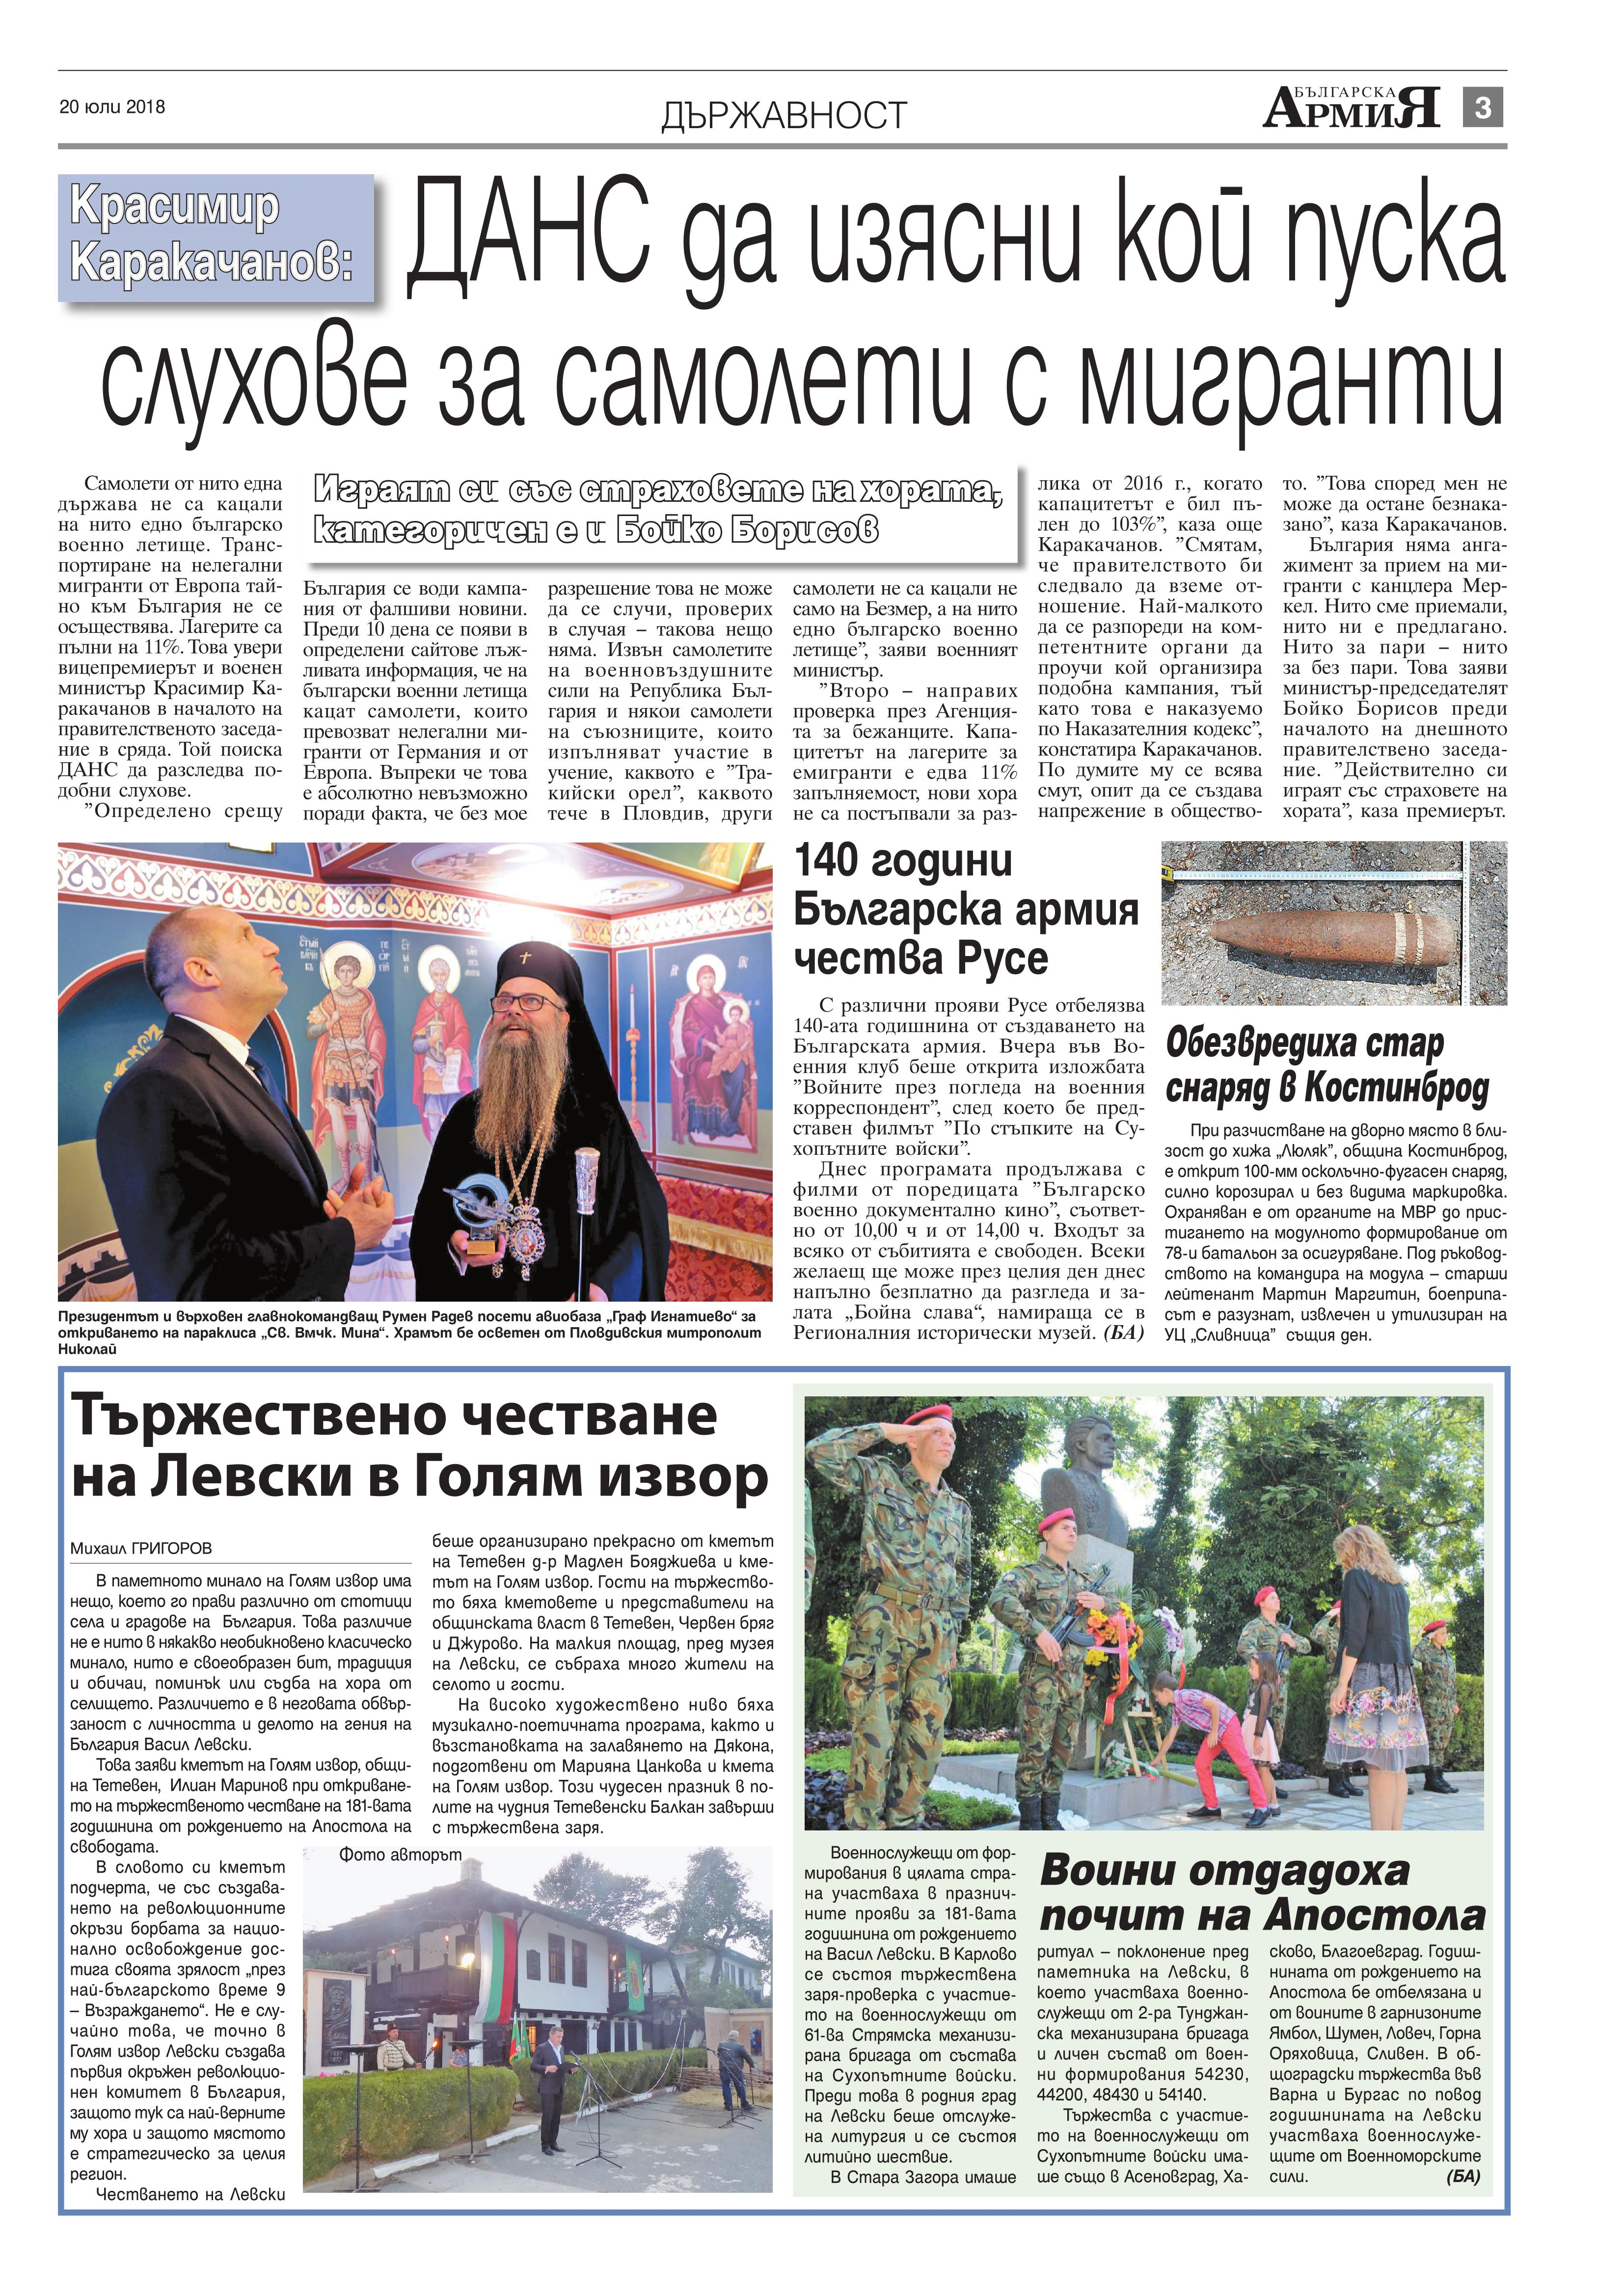 http://armymedia.bg/wp-content/uploads/2015/06/03.page1_-56.jpg